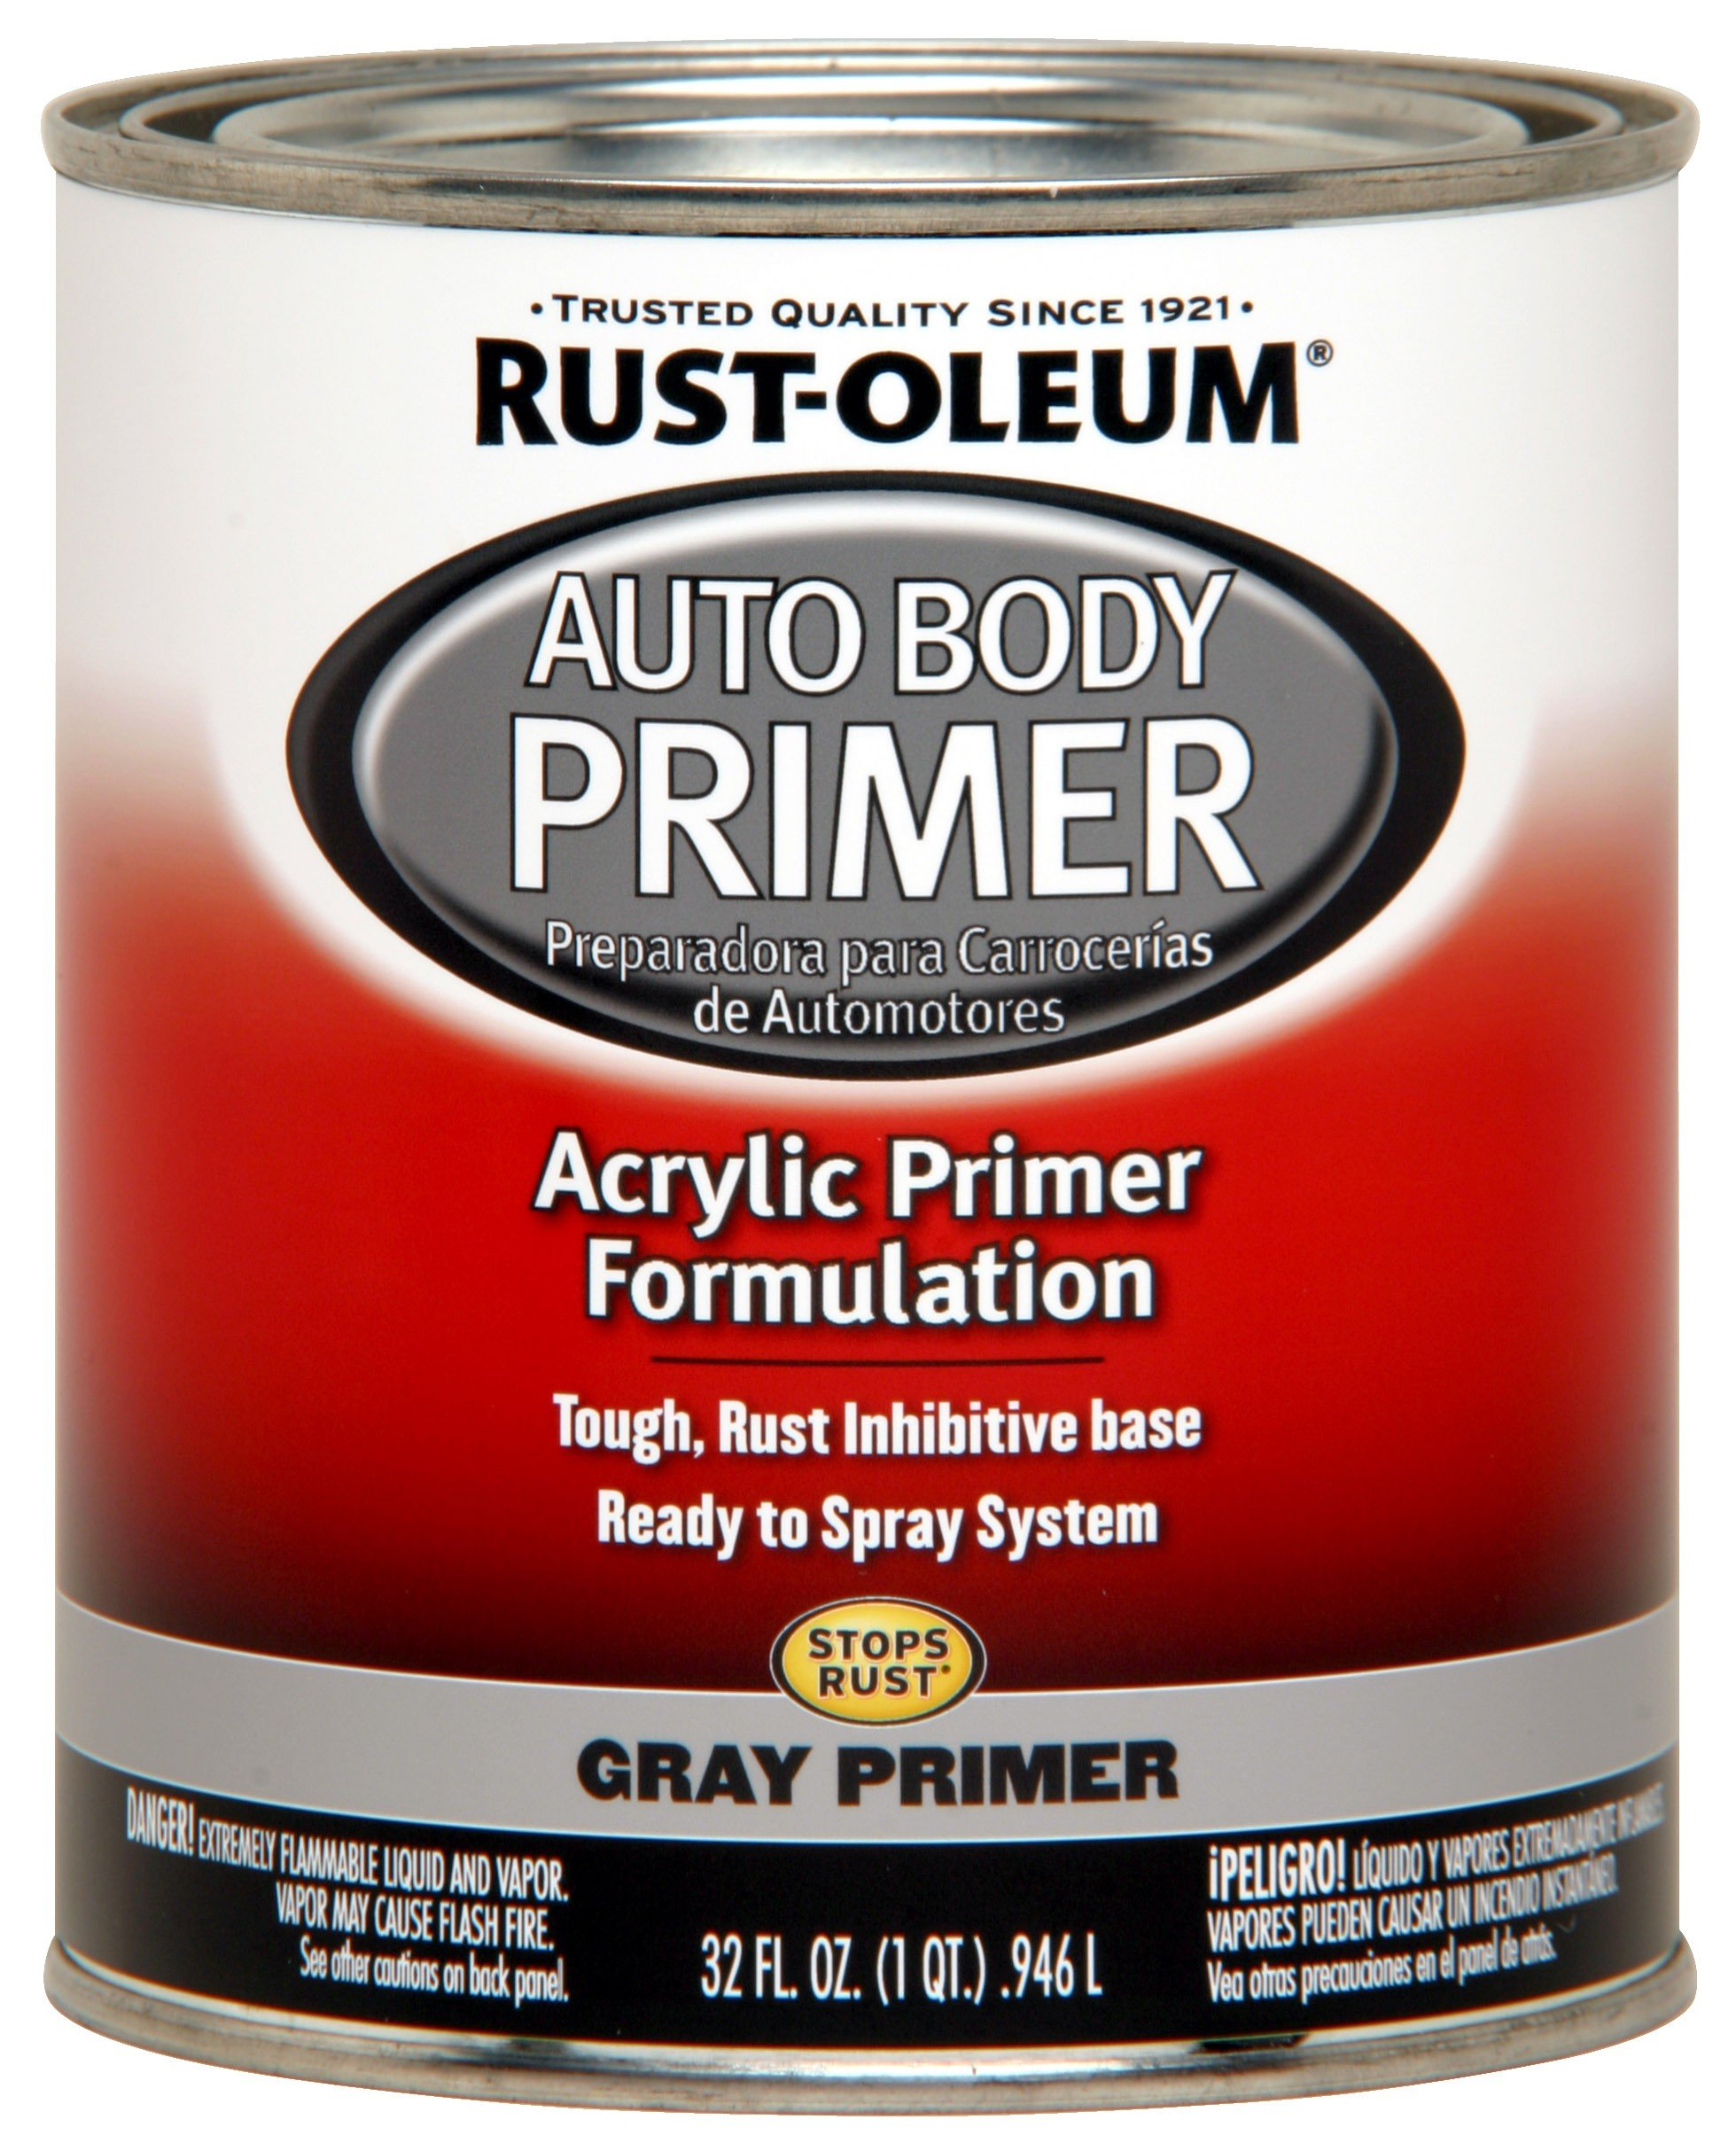 Rust-Oleum 262275 Gray Primer Automotive Auto Body Primer - 32 oz.